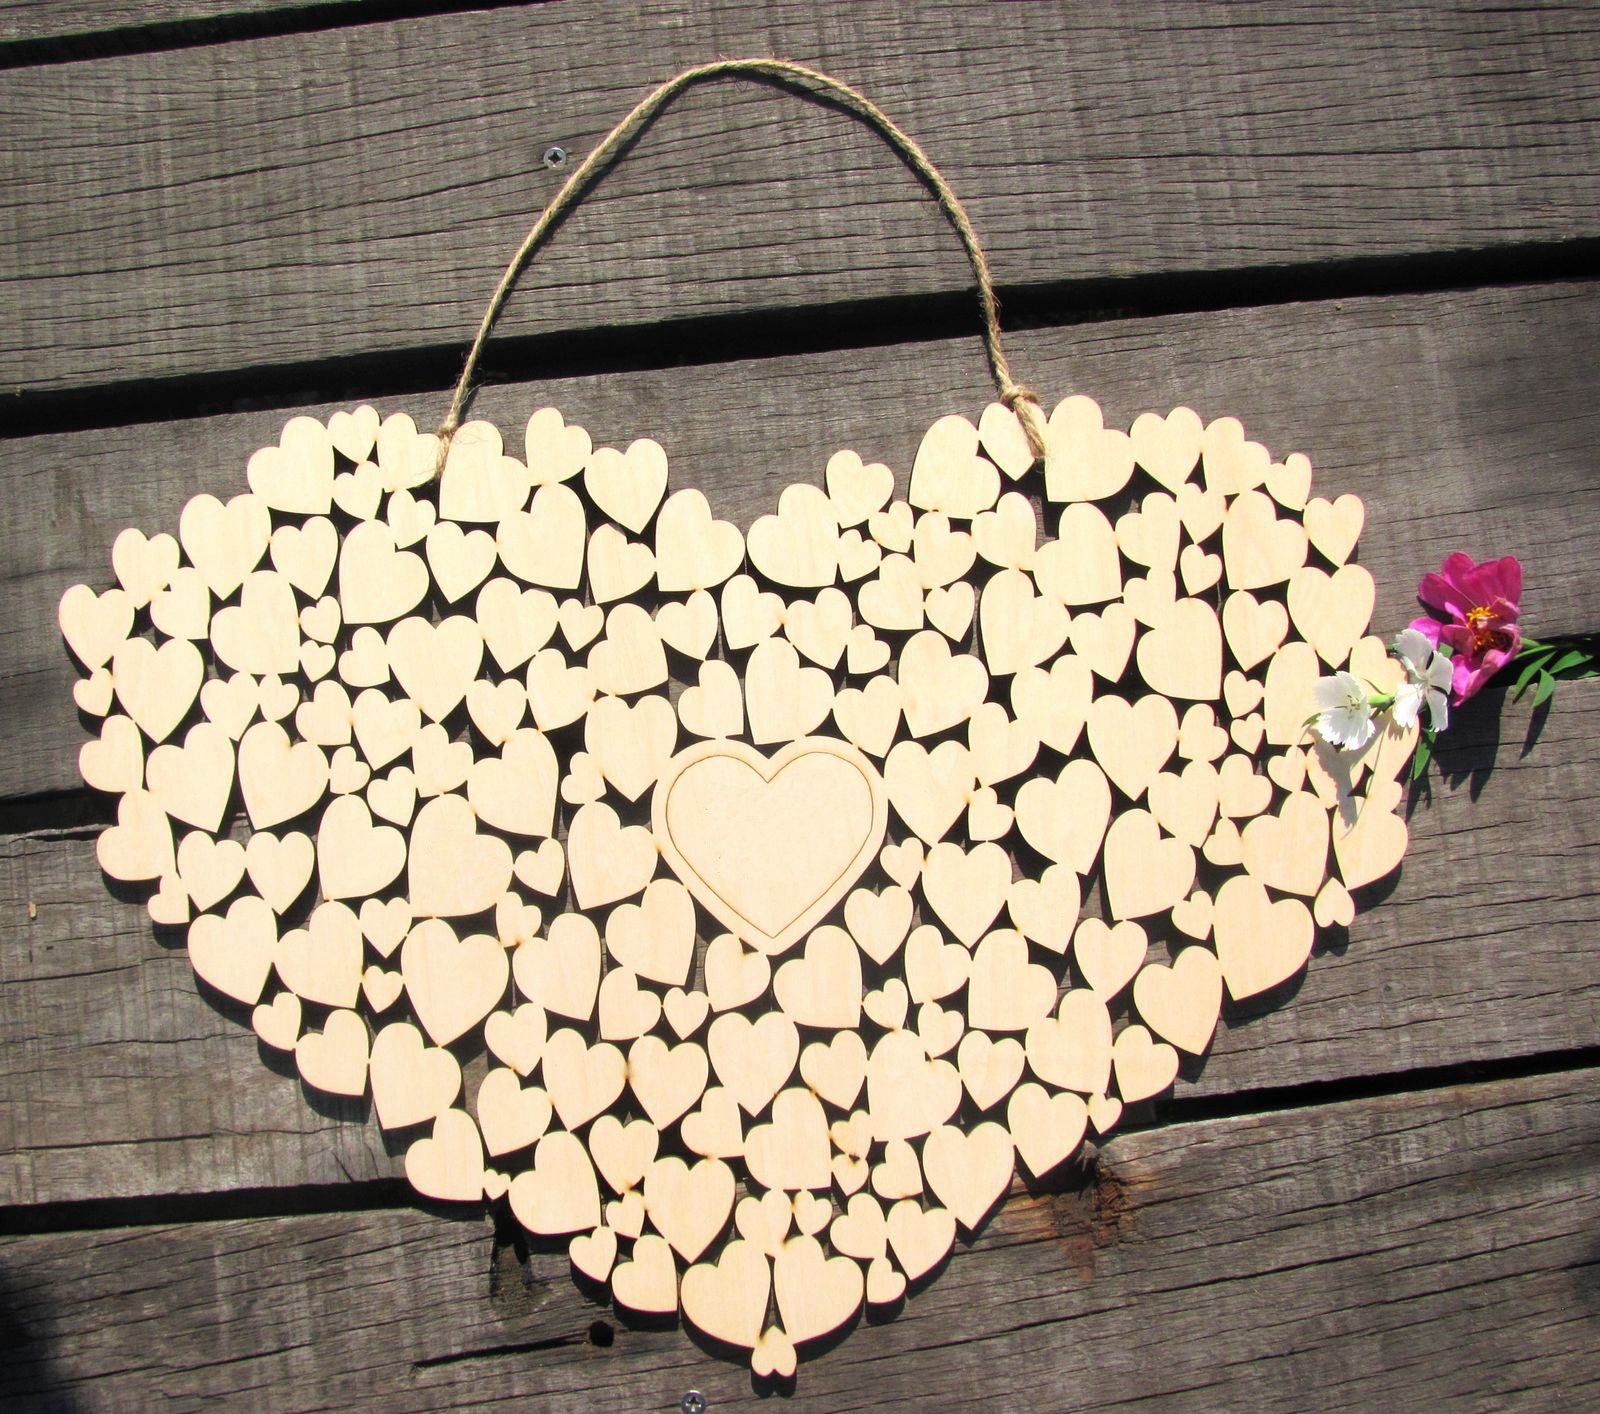 SL Crafts Wooden Heart Wedding guestbook Hanging Heart Guest Book Alternative (Natural Wood) by SL crafts (Image #1)